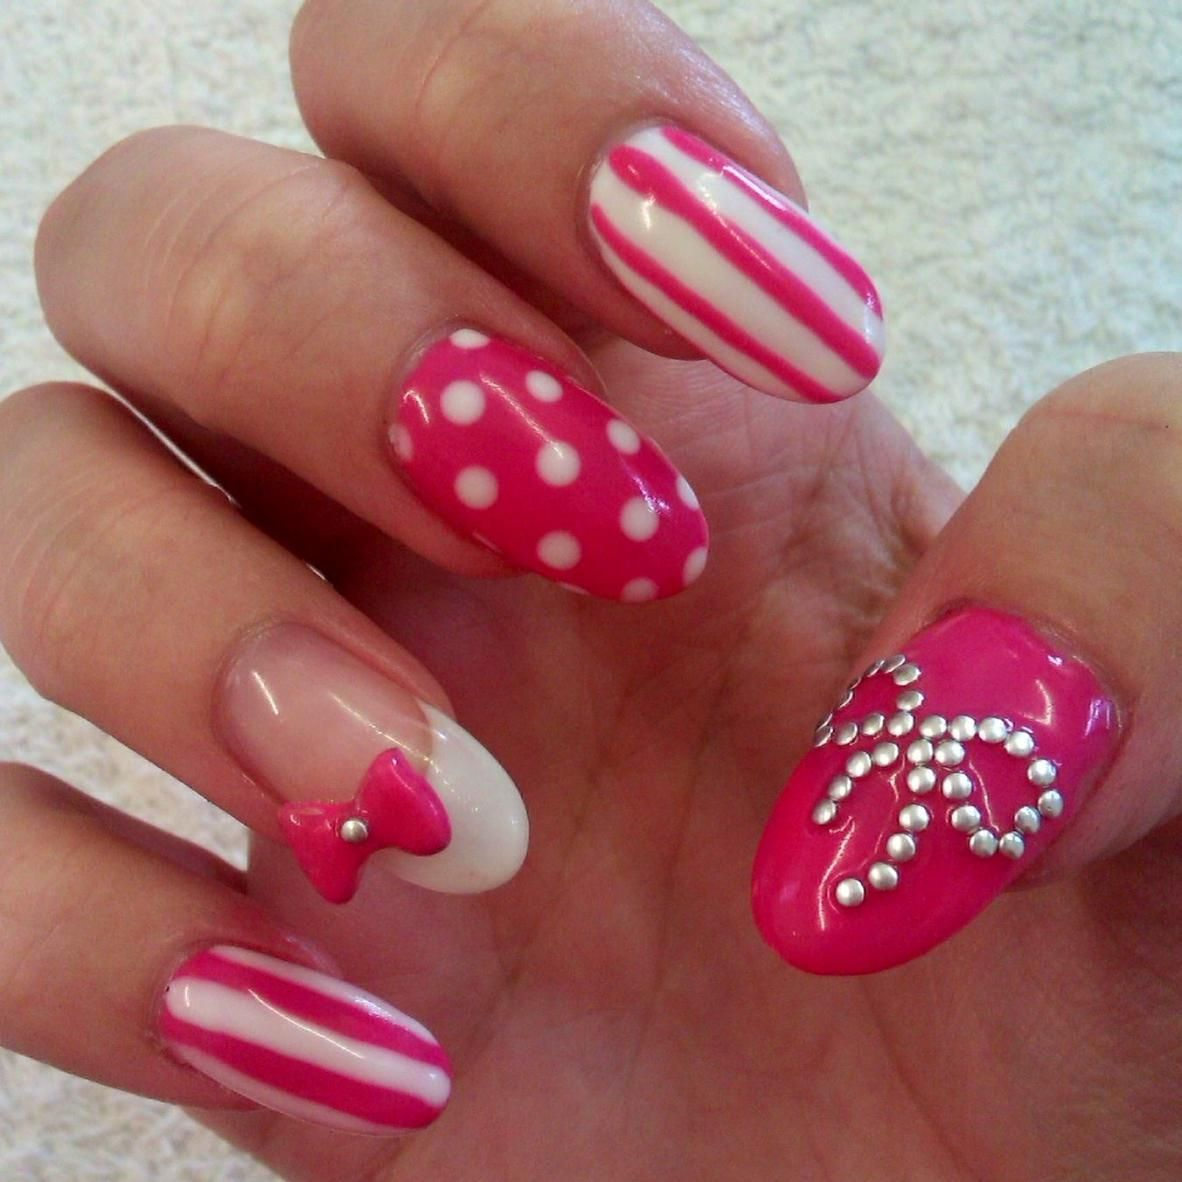 Acrylic Nails With Bows | ... are gellux, the thumb bow is made of ...